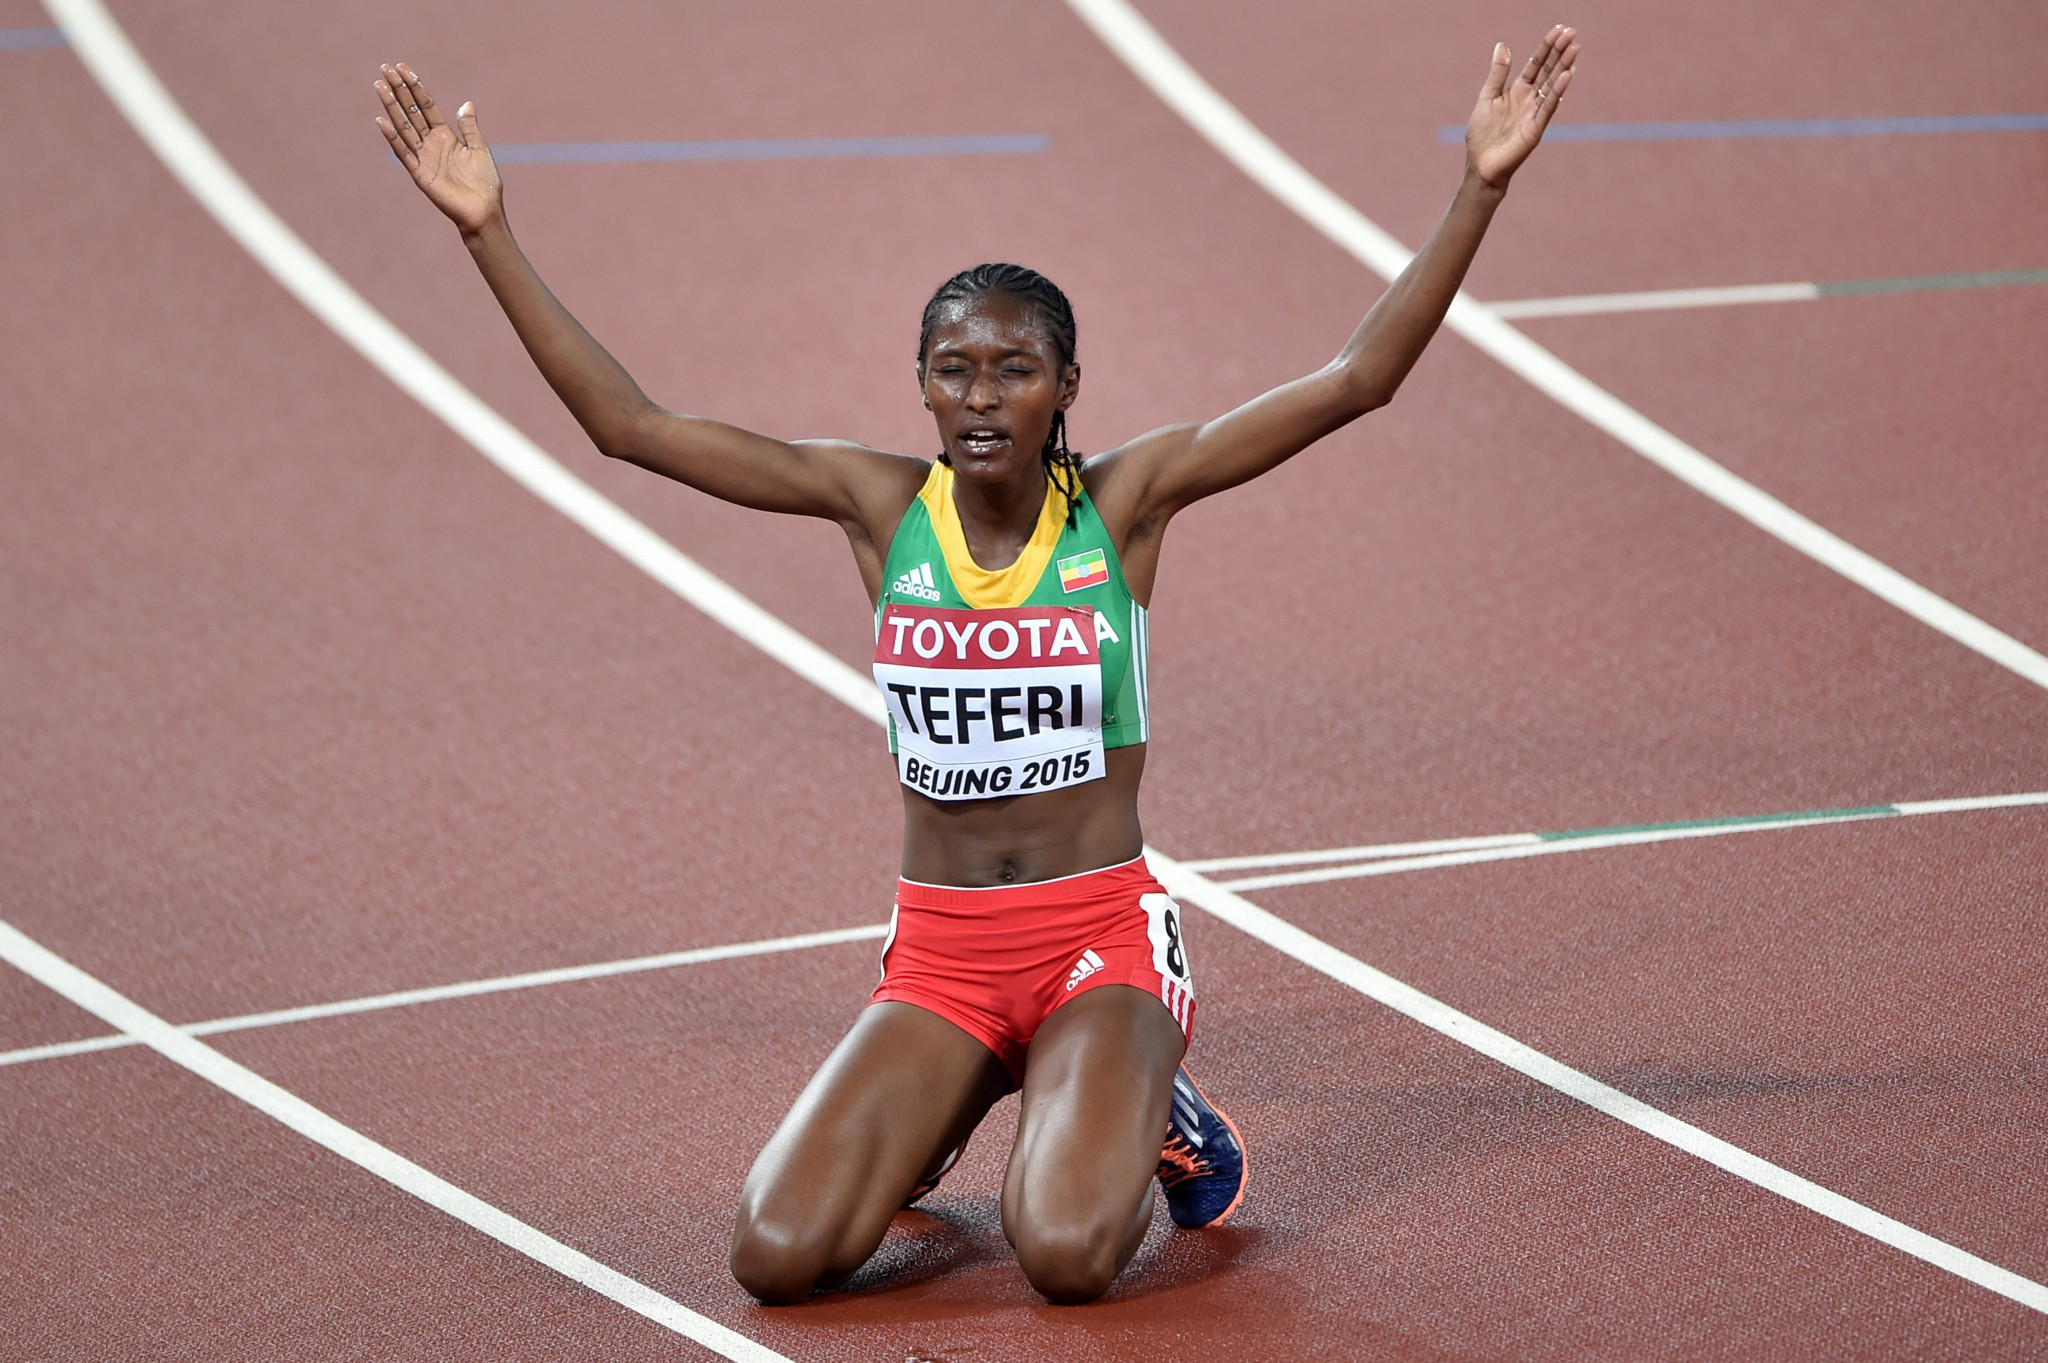 Senbere Teferi will look for a third women's title ©Getty Images